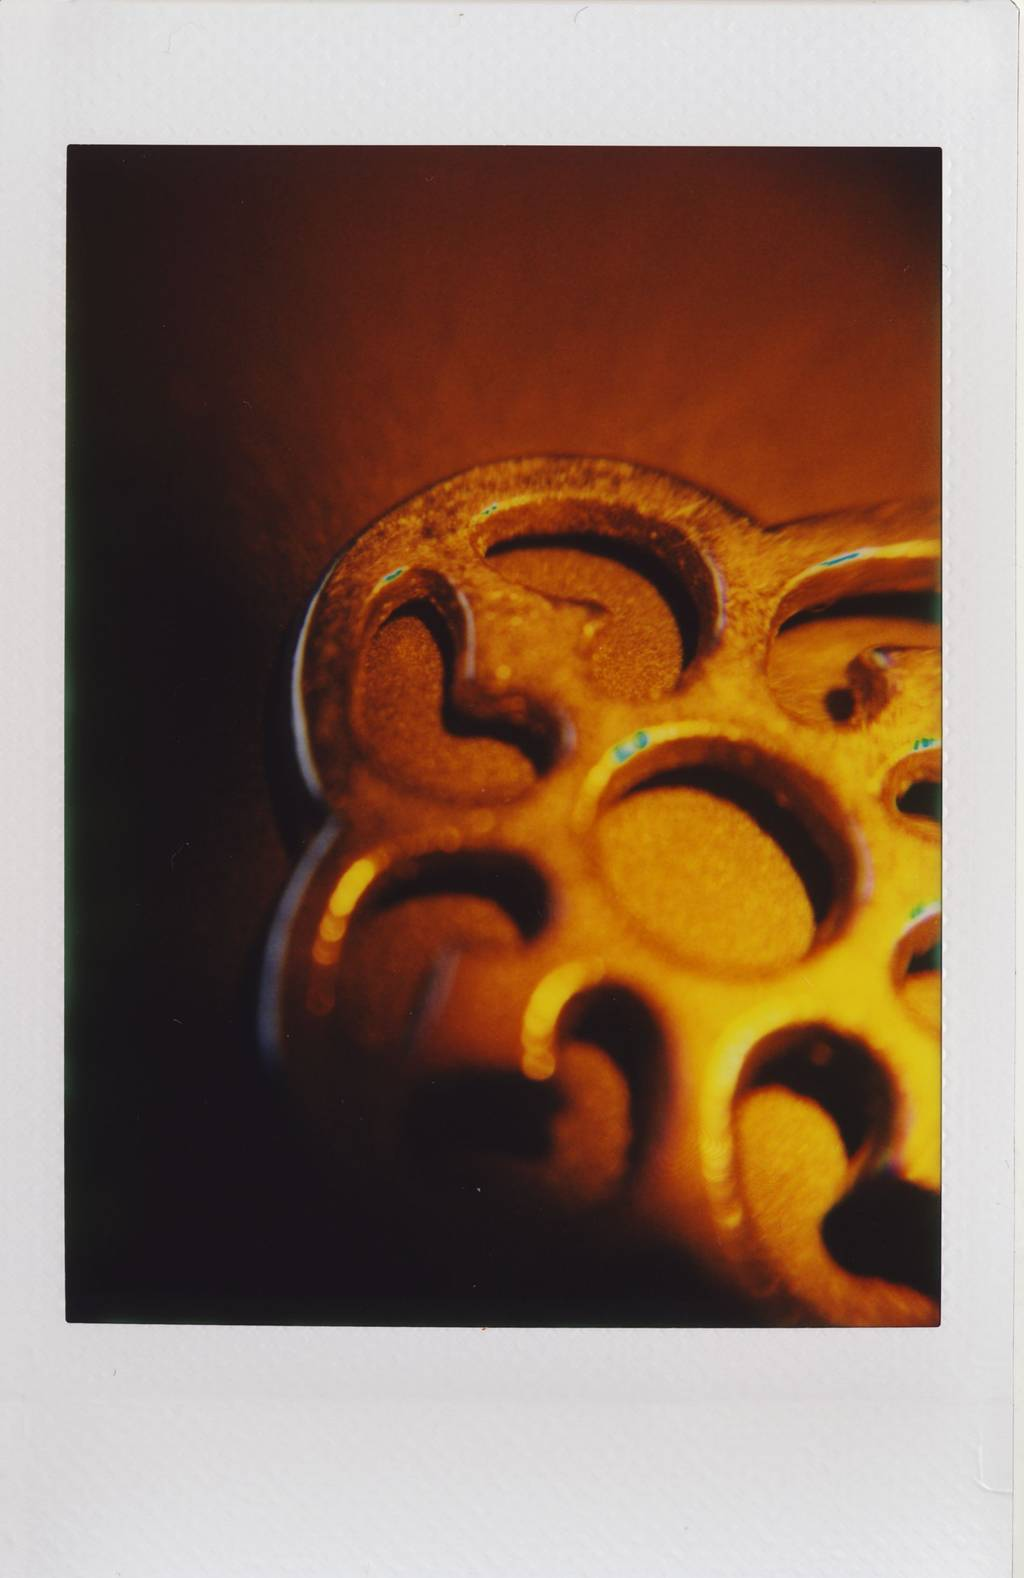 Colourful Instax Mini Macros With the Tunnel Vision Lens